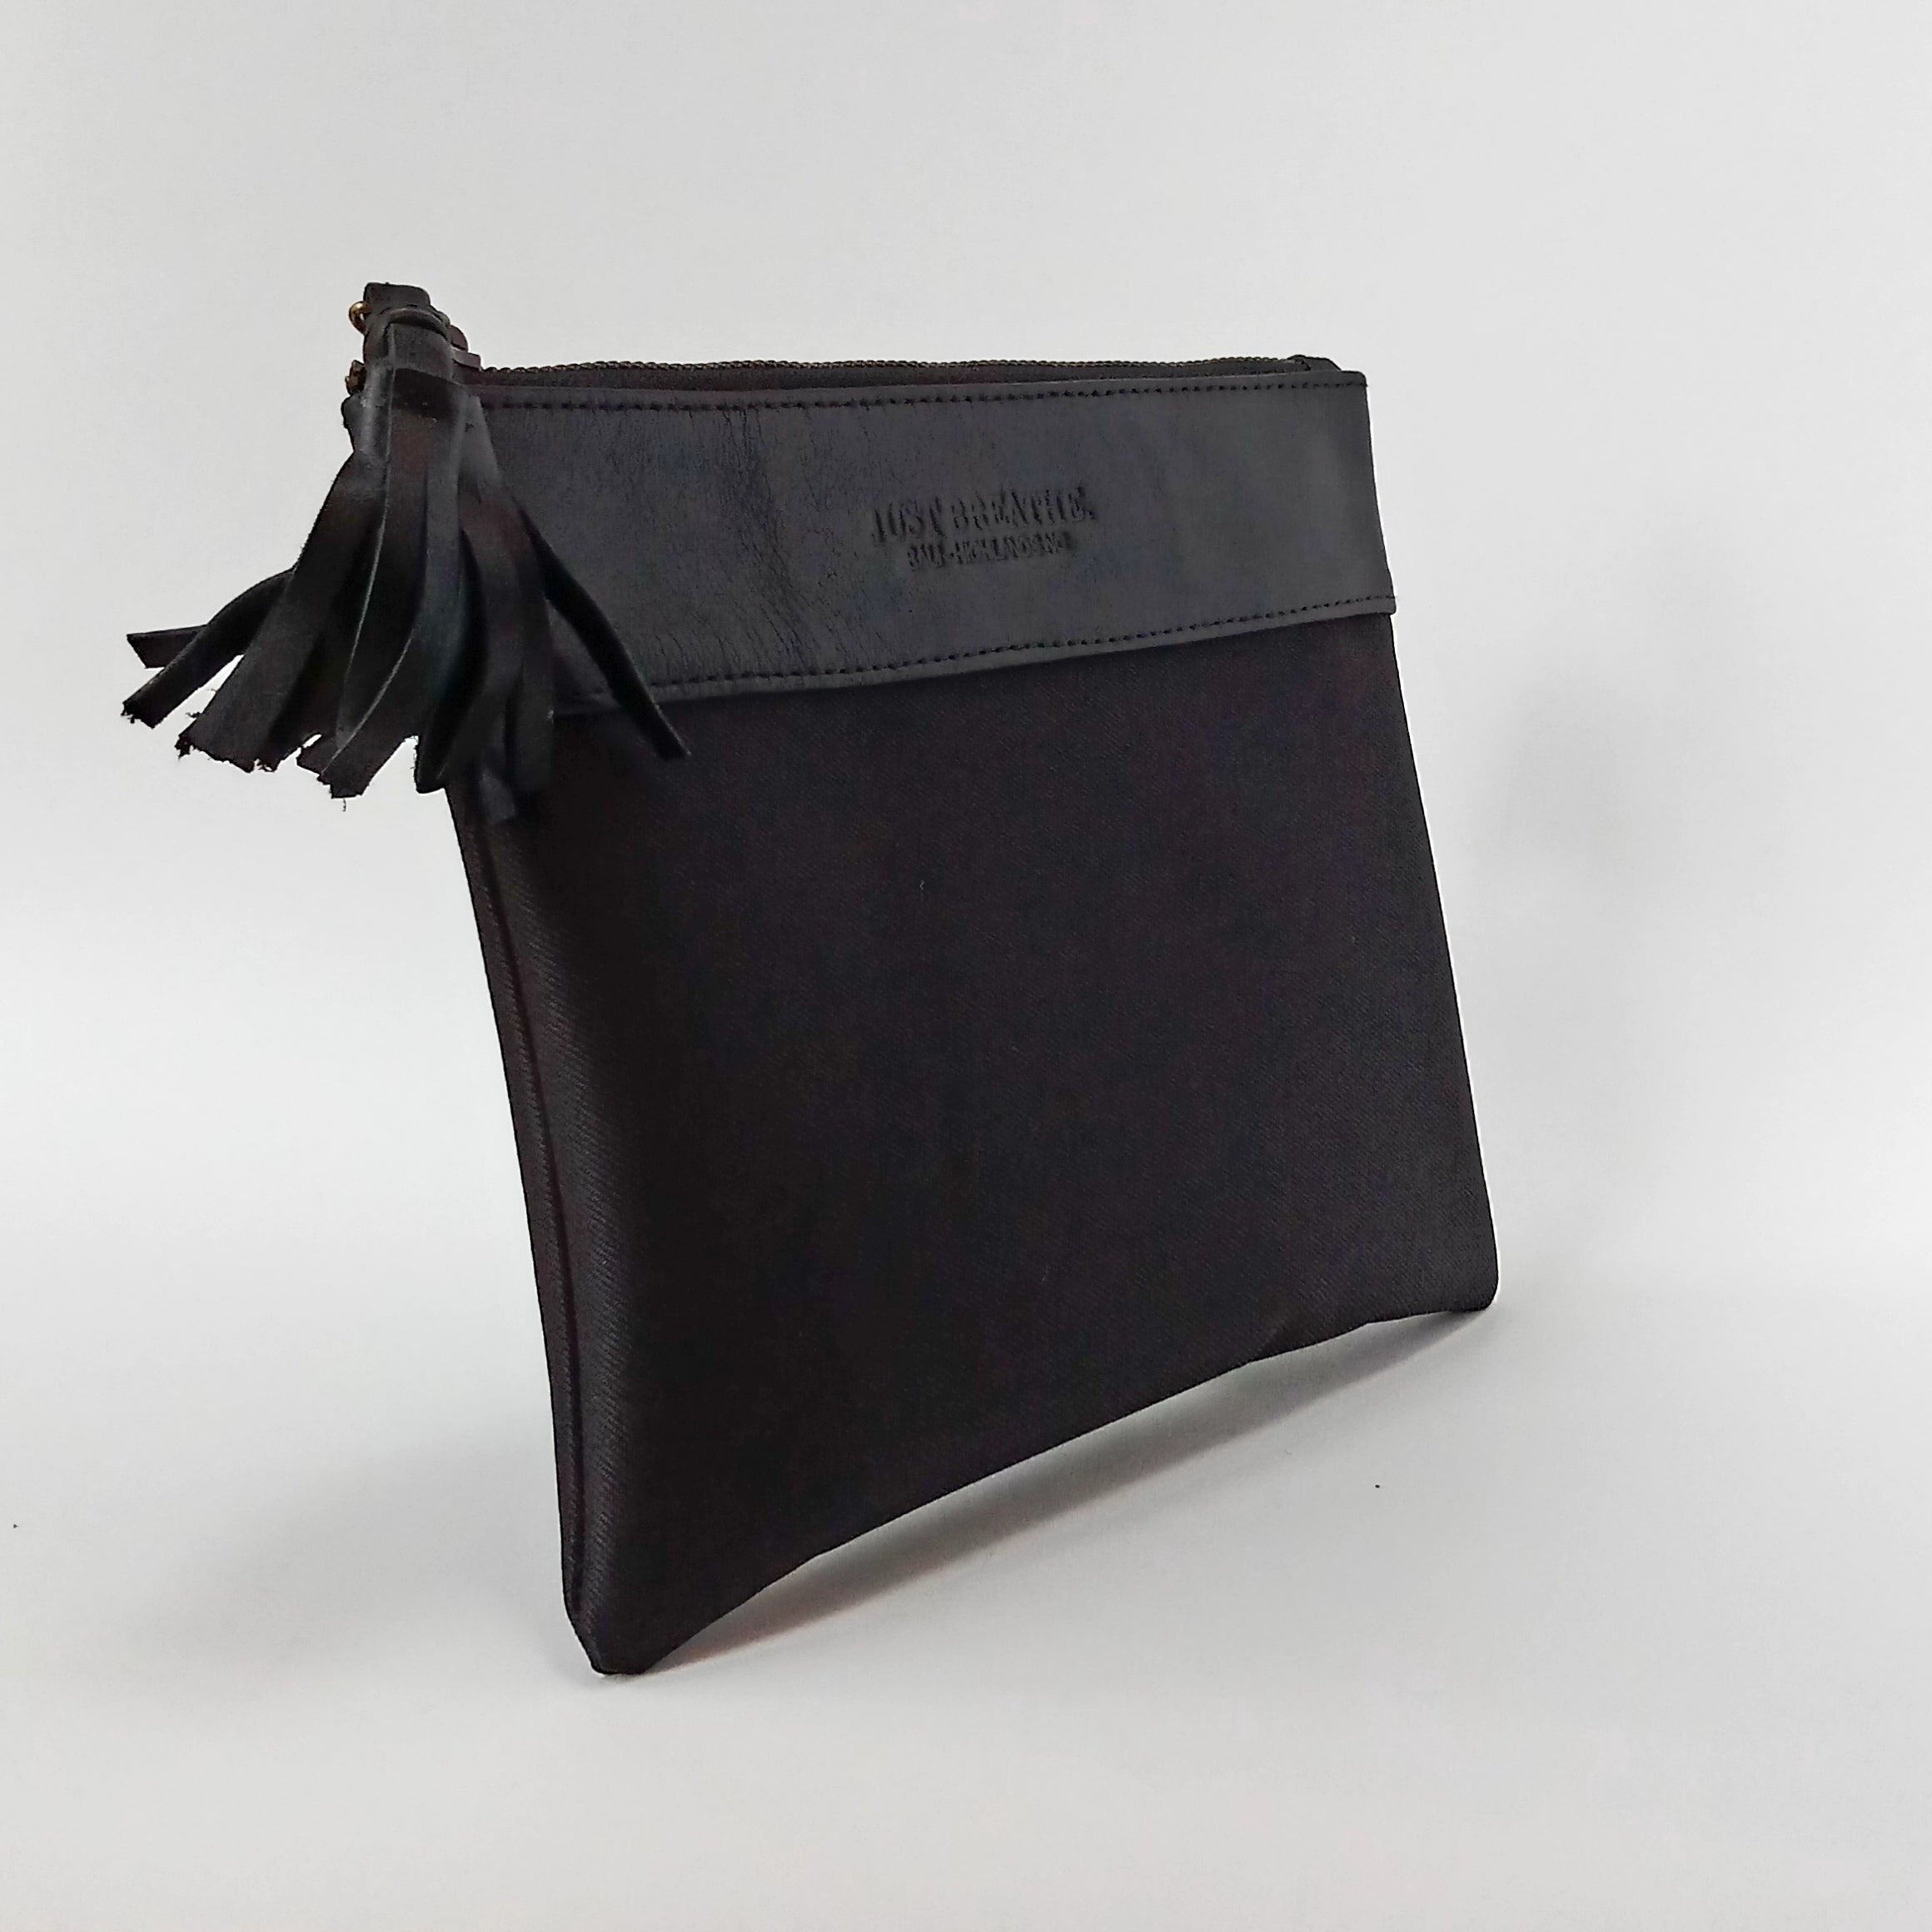 black leather and nylon pouch makeup bag